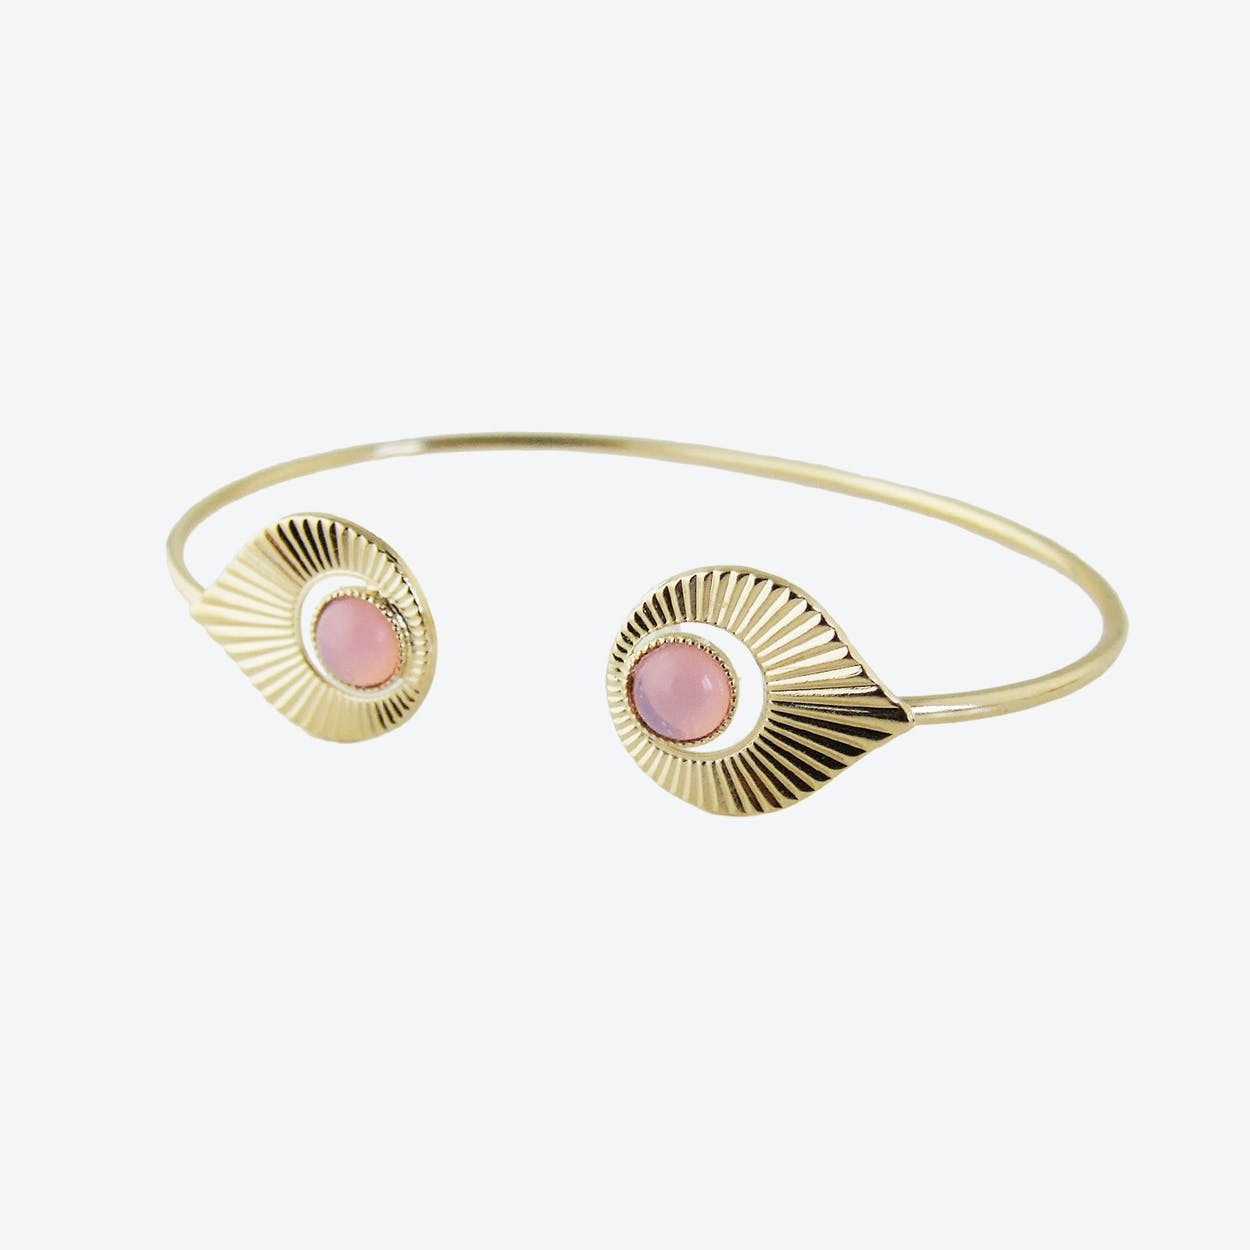 Gold Art Deco inspired Open Bangle in Opal Pink